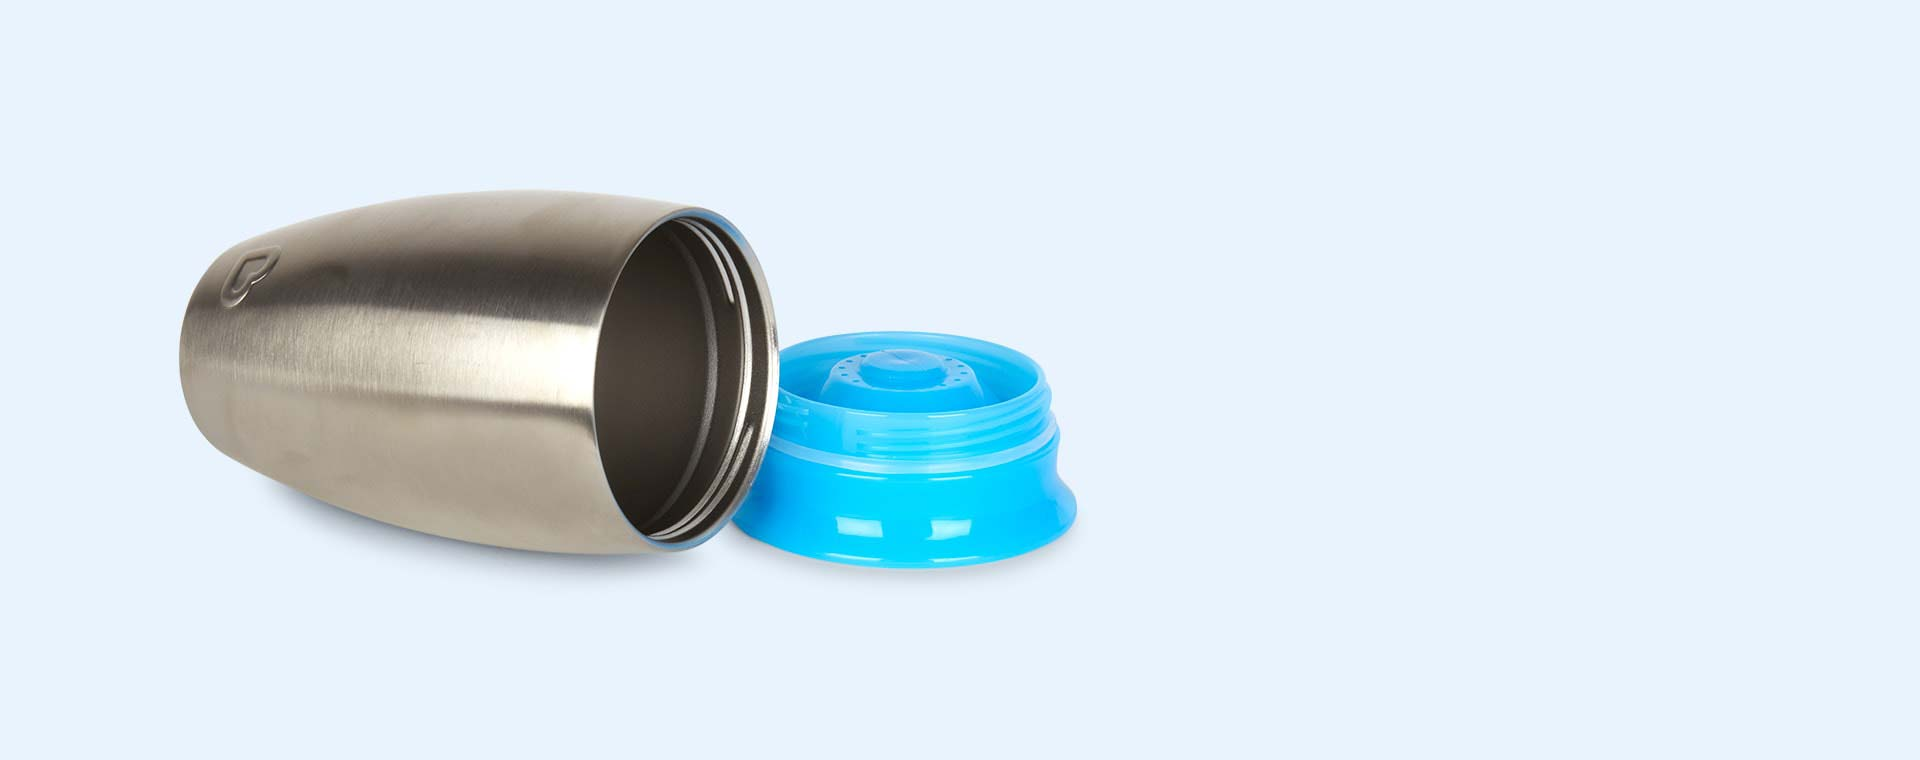 Blue Munchkin Stainless Steel Miracle Cup